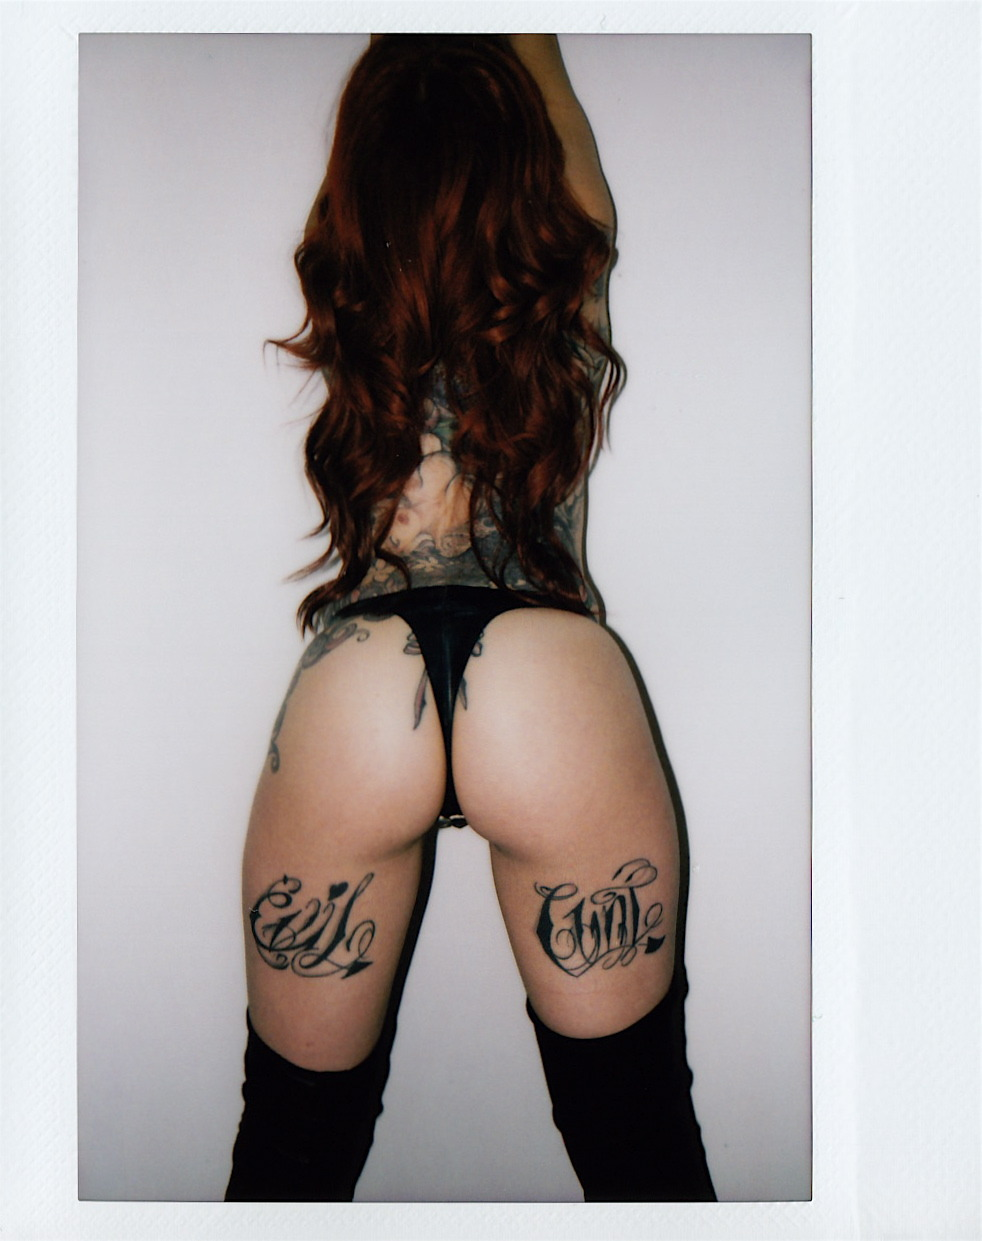 whydontyougosuckafuck:  walnutwax:  MISS CRASH BY WALNUTWAX http://themisscrash.tumblr.com/  omg i need those thigh tattoos